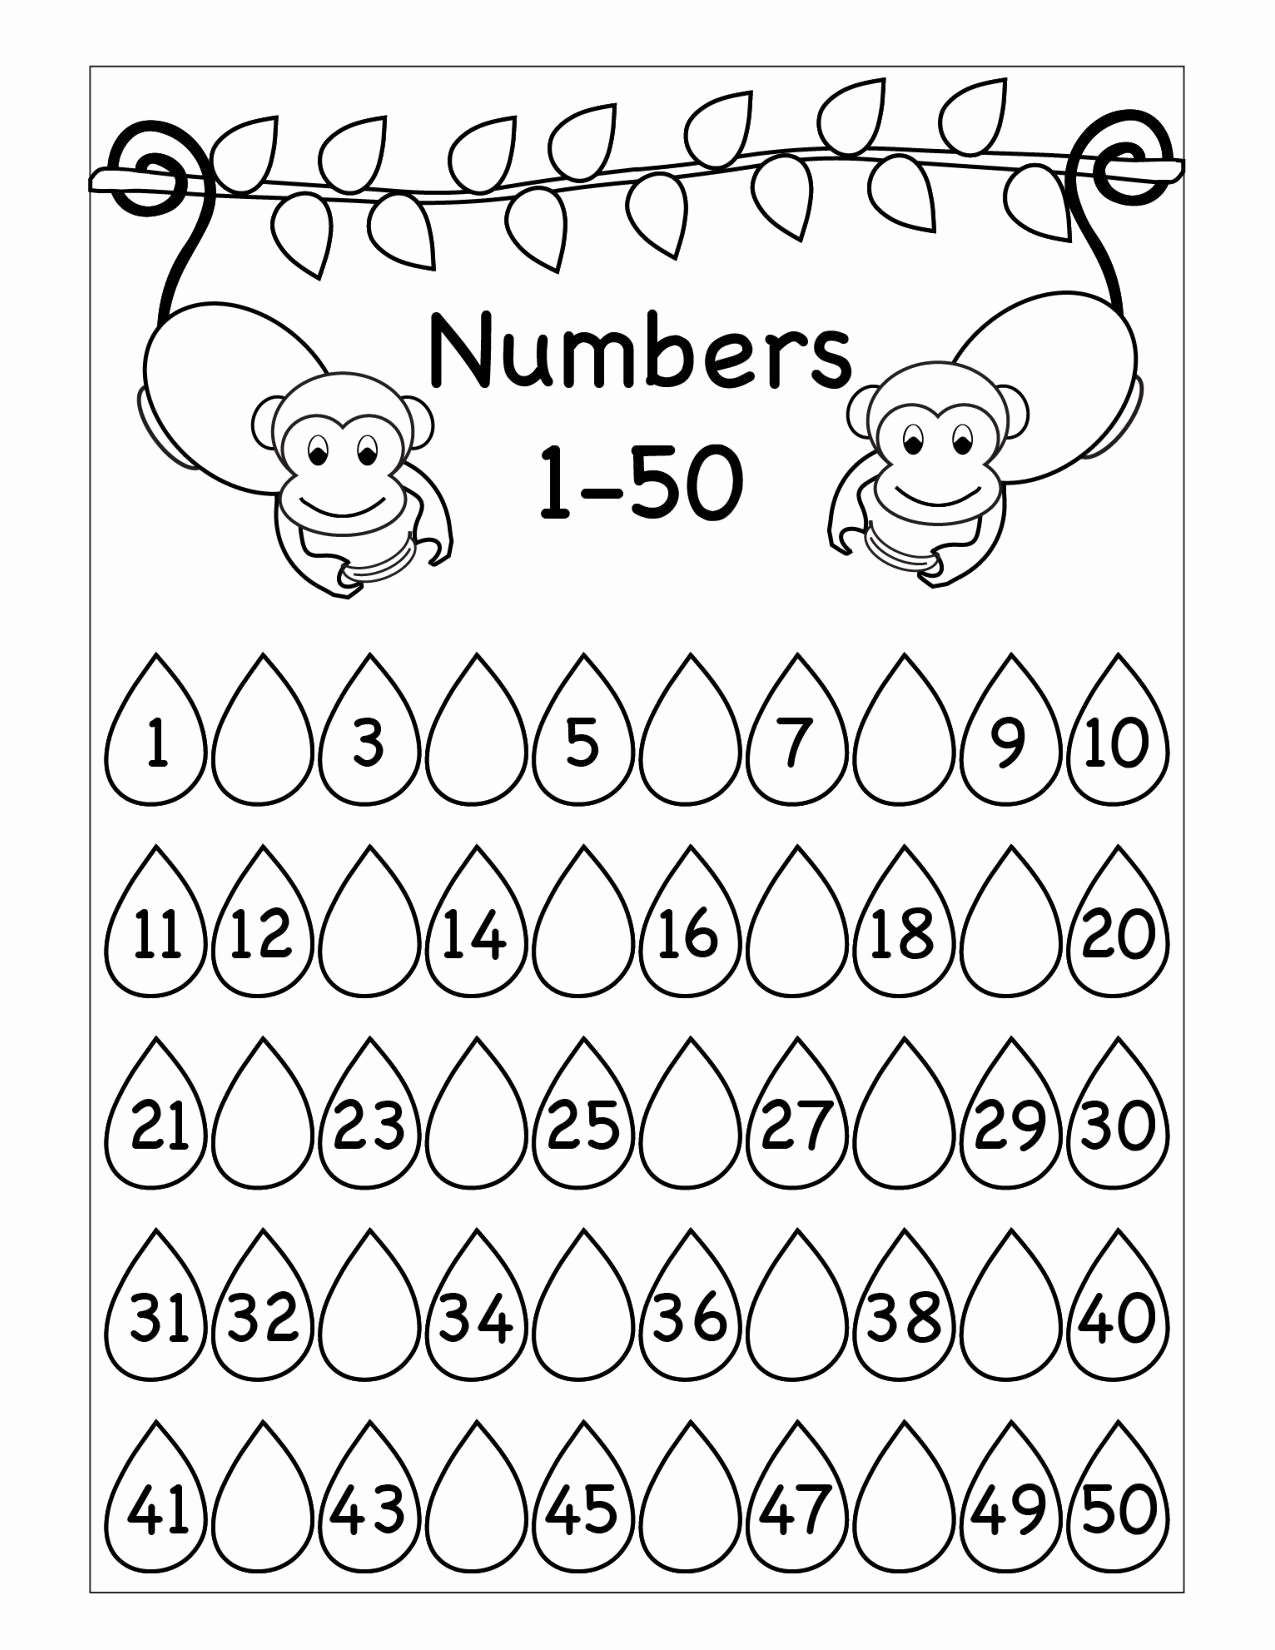 Missing Number Worksheets 1 20 Best Of Missing Numbers Worksheet Printable Worksheets and Tracing